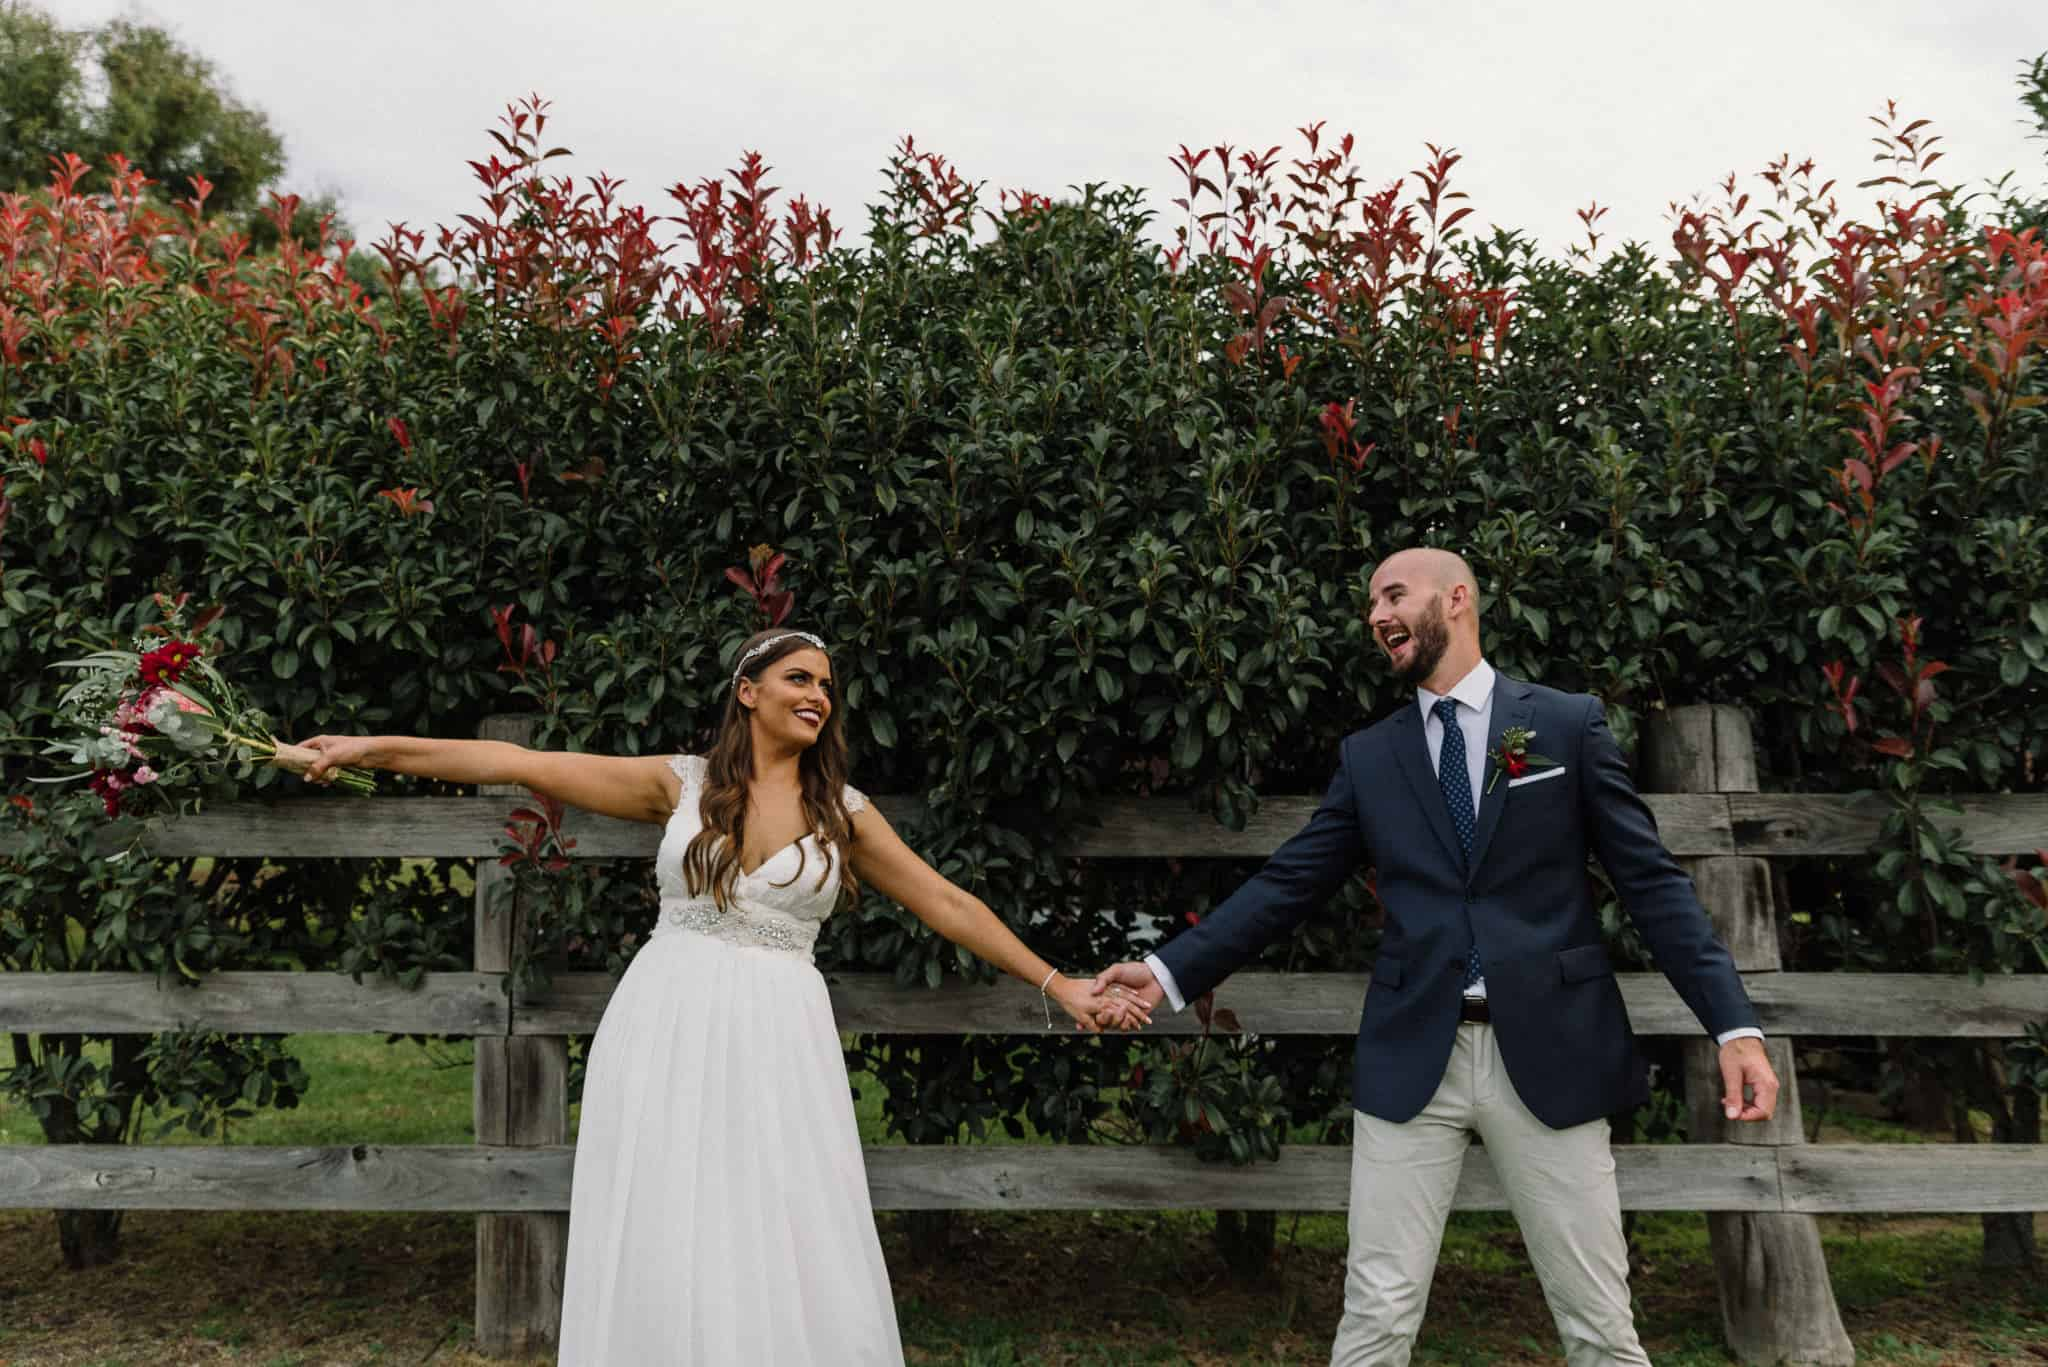 Bride and groom dance under trees Captured by James White Hunter Valley Wedding Photographer